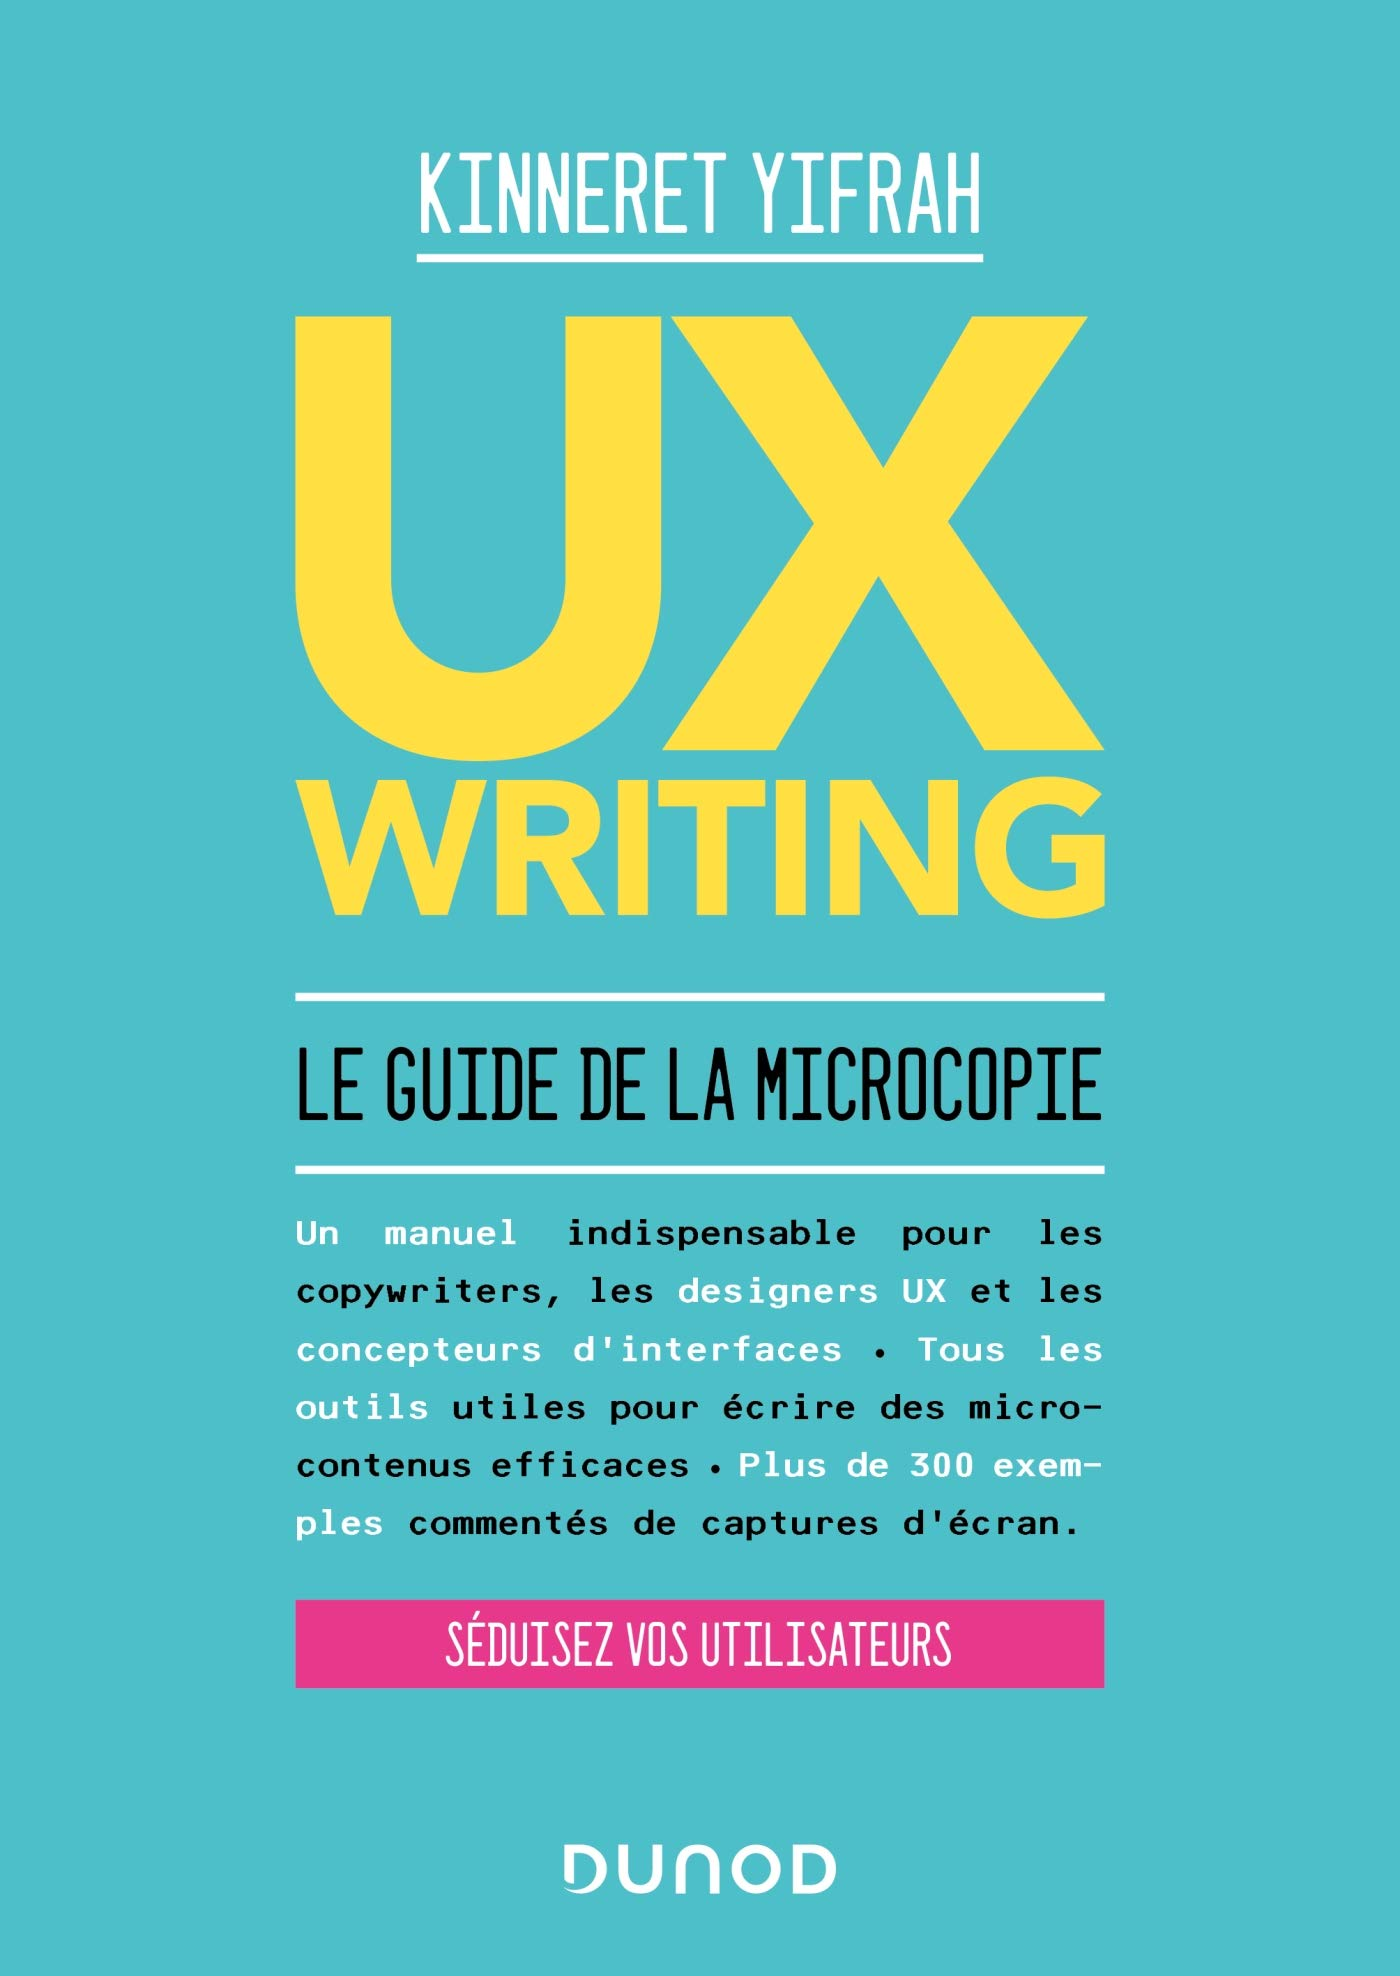 Image OfUX Writing - Le Guide De La Microcopie: Le Guide De La Microcopie